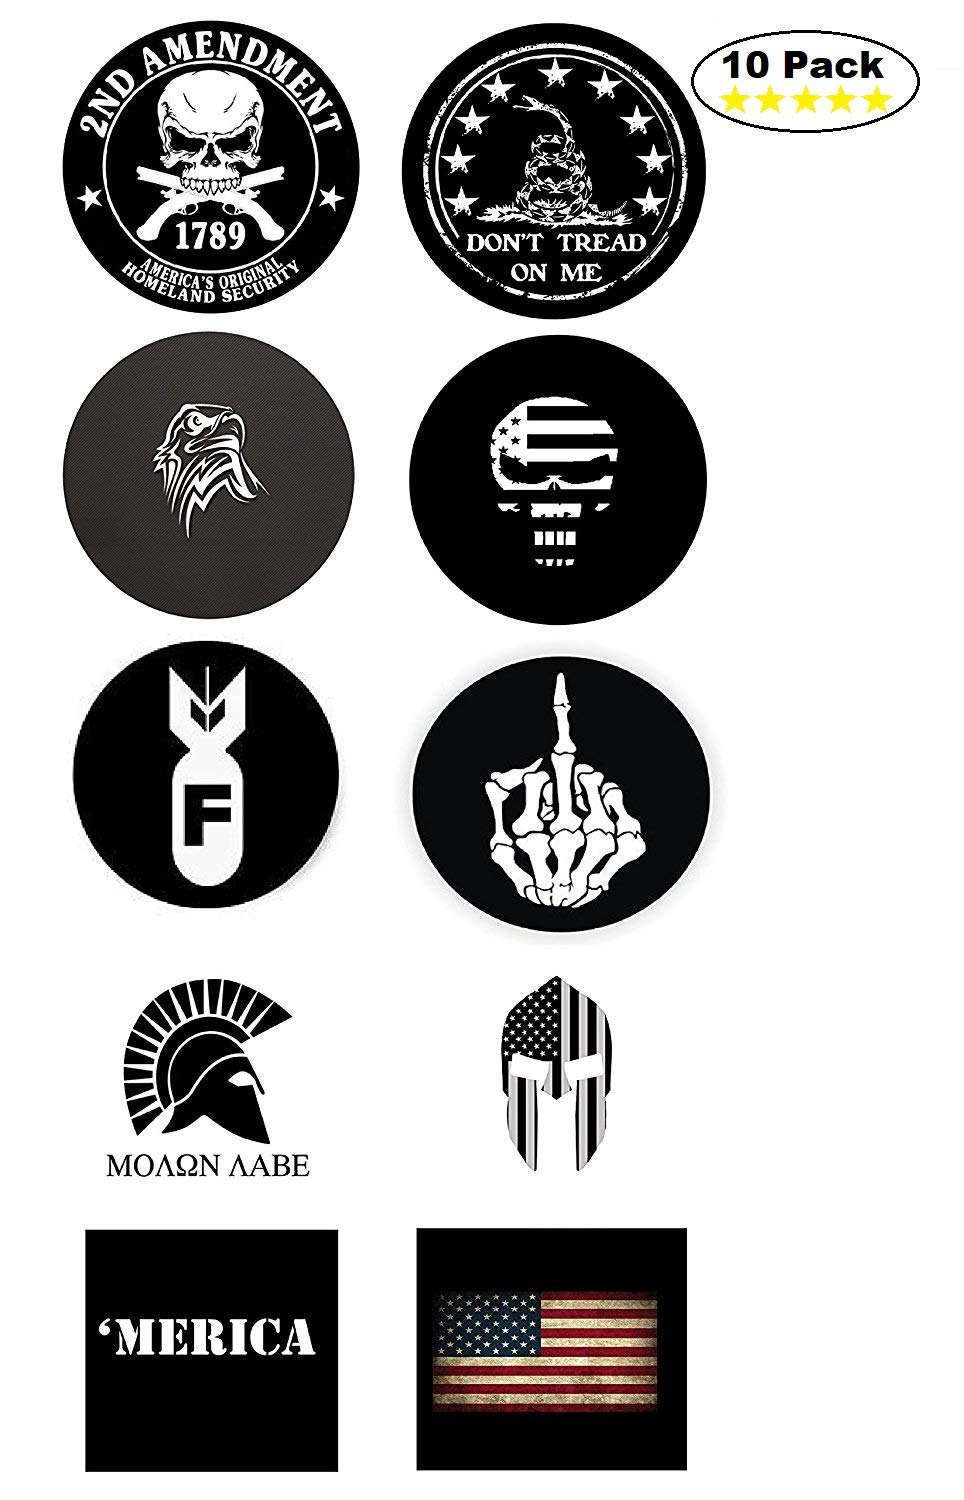 Union Hard Hat Stickers - BEST SELLER - 10 Decal Value Pack. Great for a Construction Toolbox, Hardhat, Lunchbox, Helmet, Mechanic, Military. Fun Gift for American Working Men & Women. USA Made. by H&E Deals